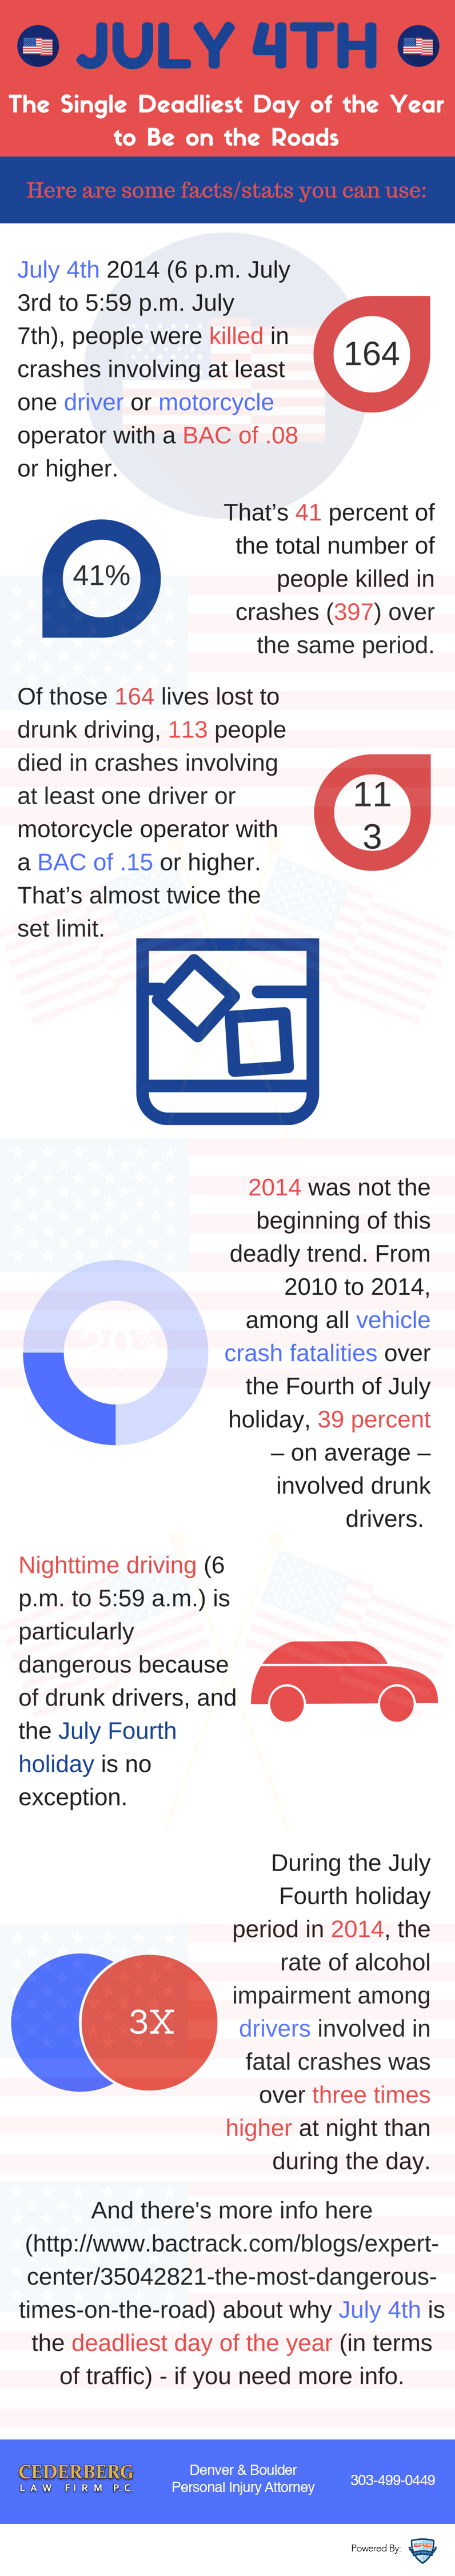 July 4th Is the Deadliest Day to Be on the Roads [Infographic]